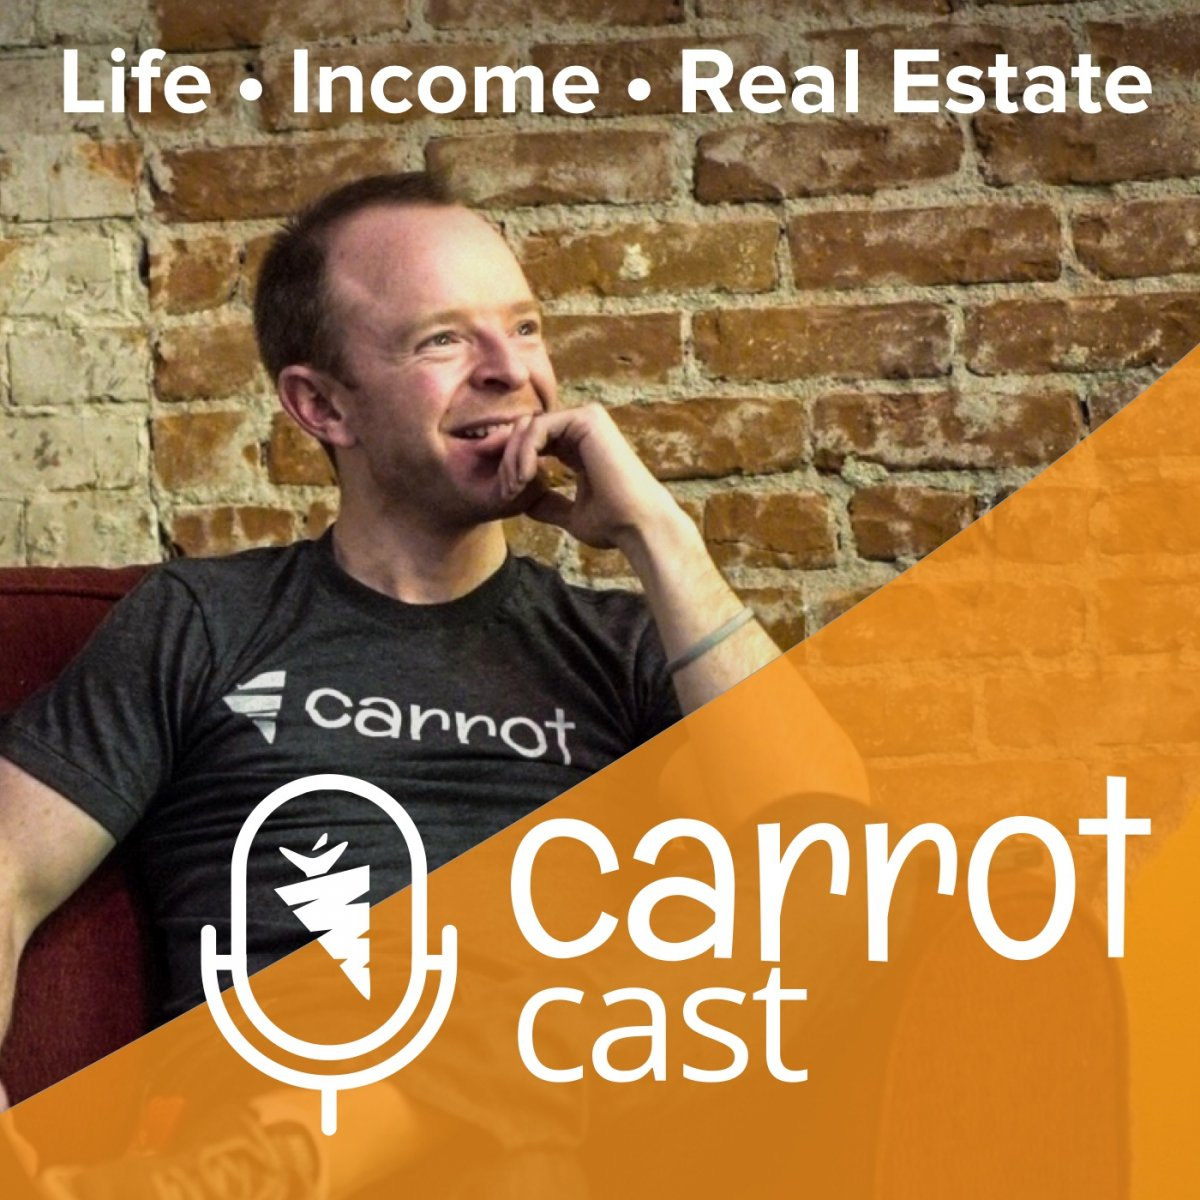 long term real estate investing plan w/ Carlos Vaz